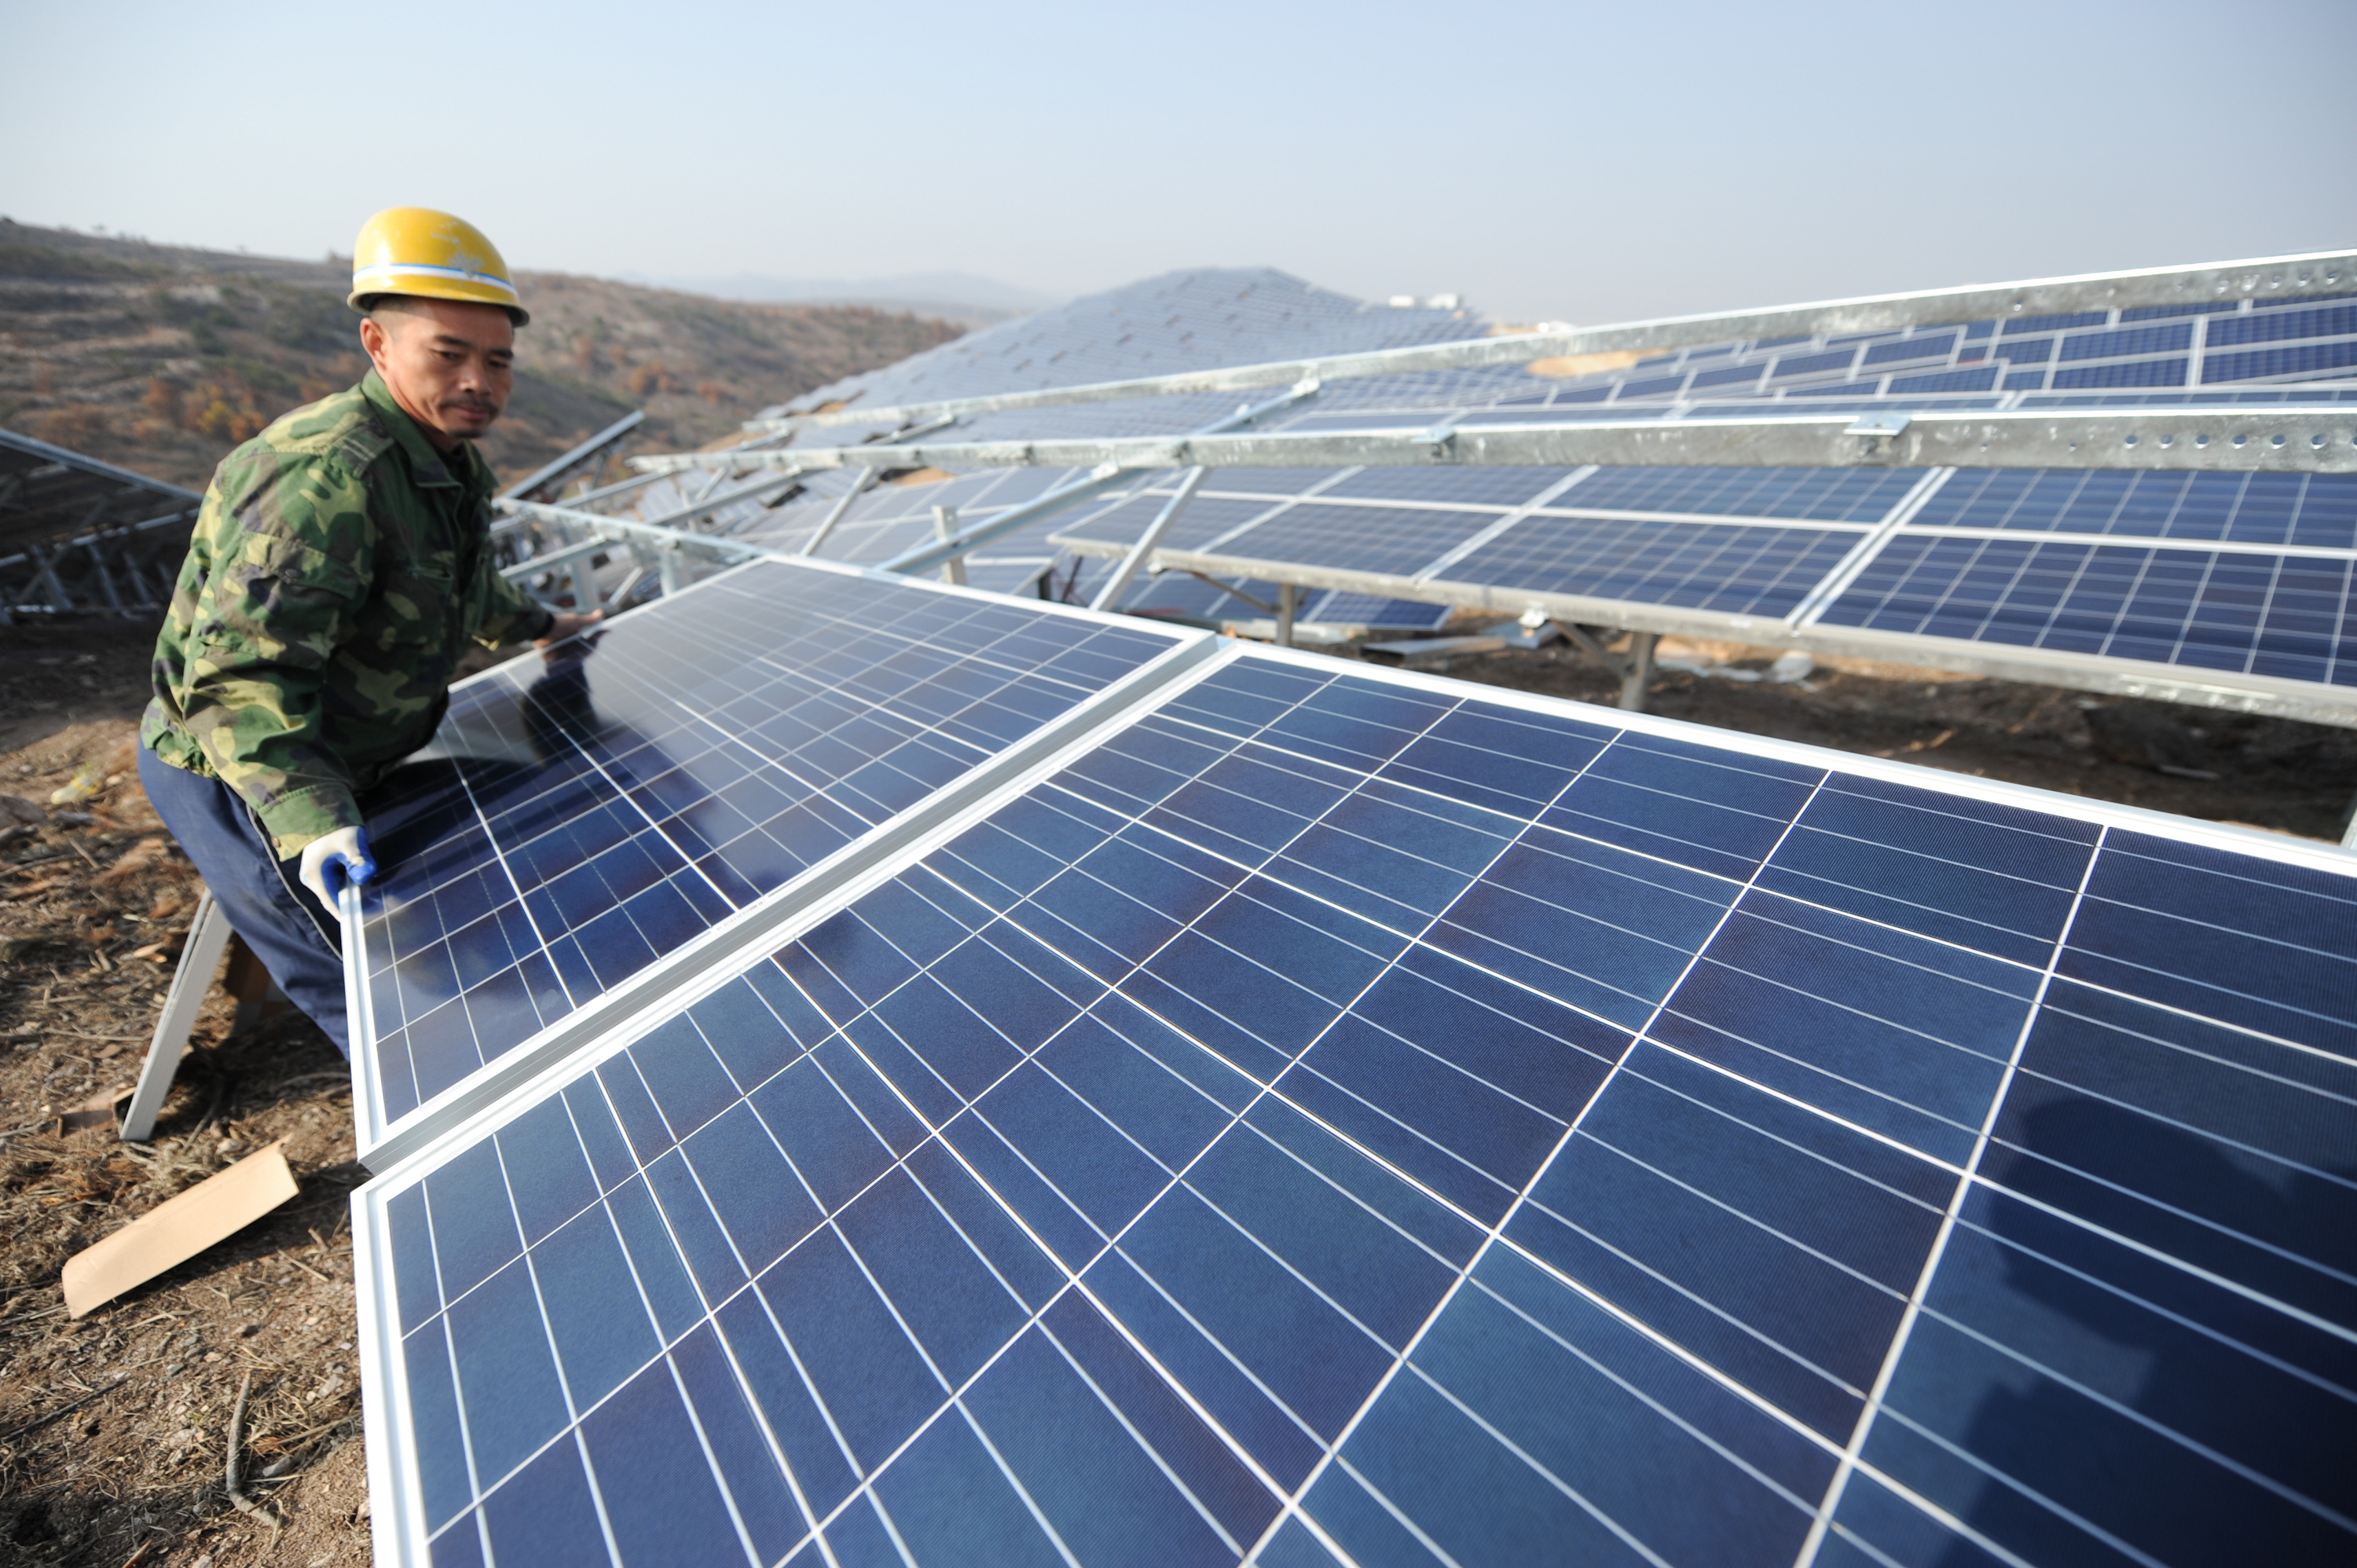 A worker installs polycrystalline silicon solar panels as terrestrial photovoltaic power project starts in 2015 in Yantai, Shandong Province of China.